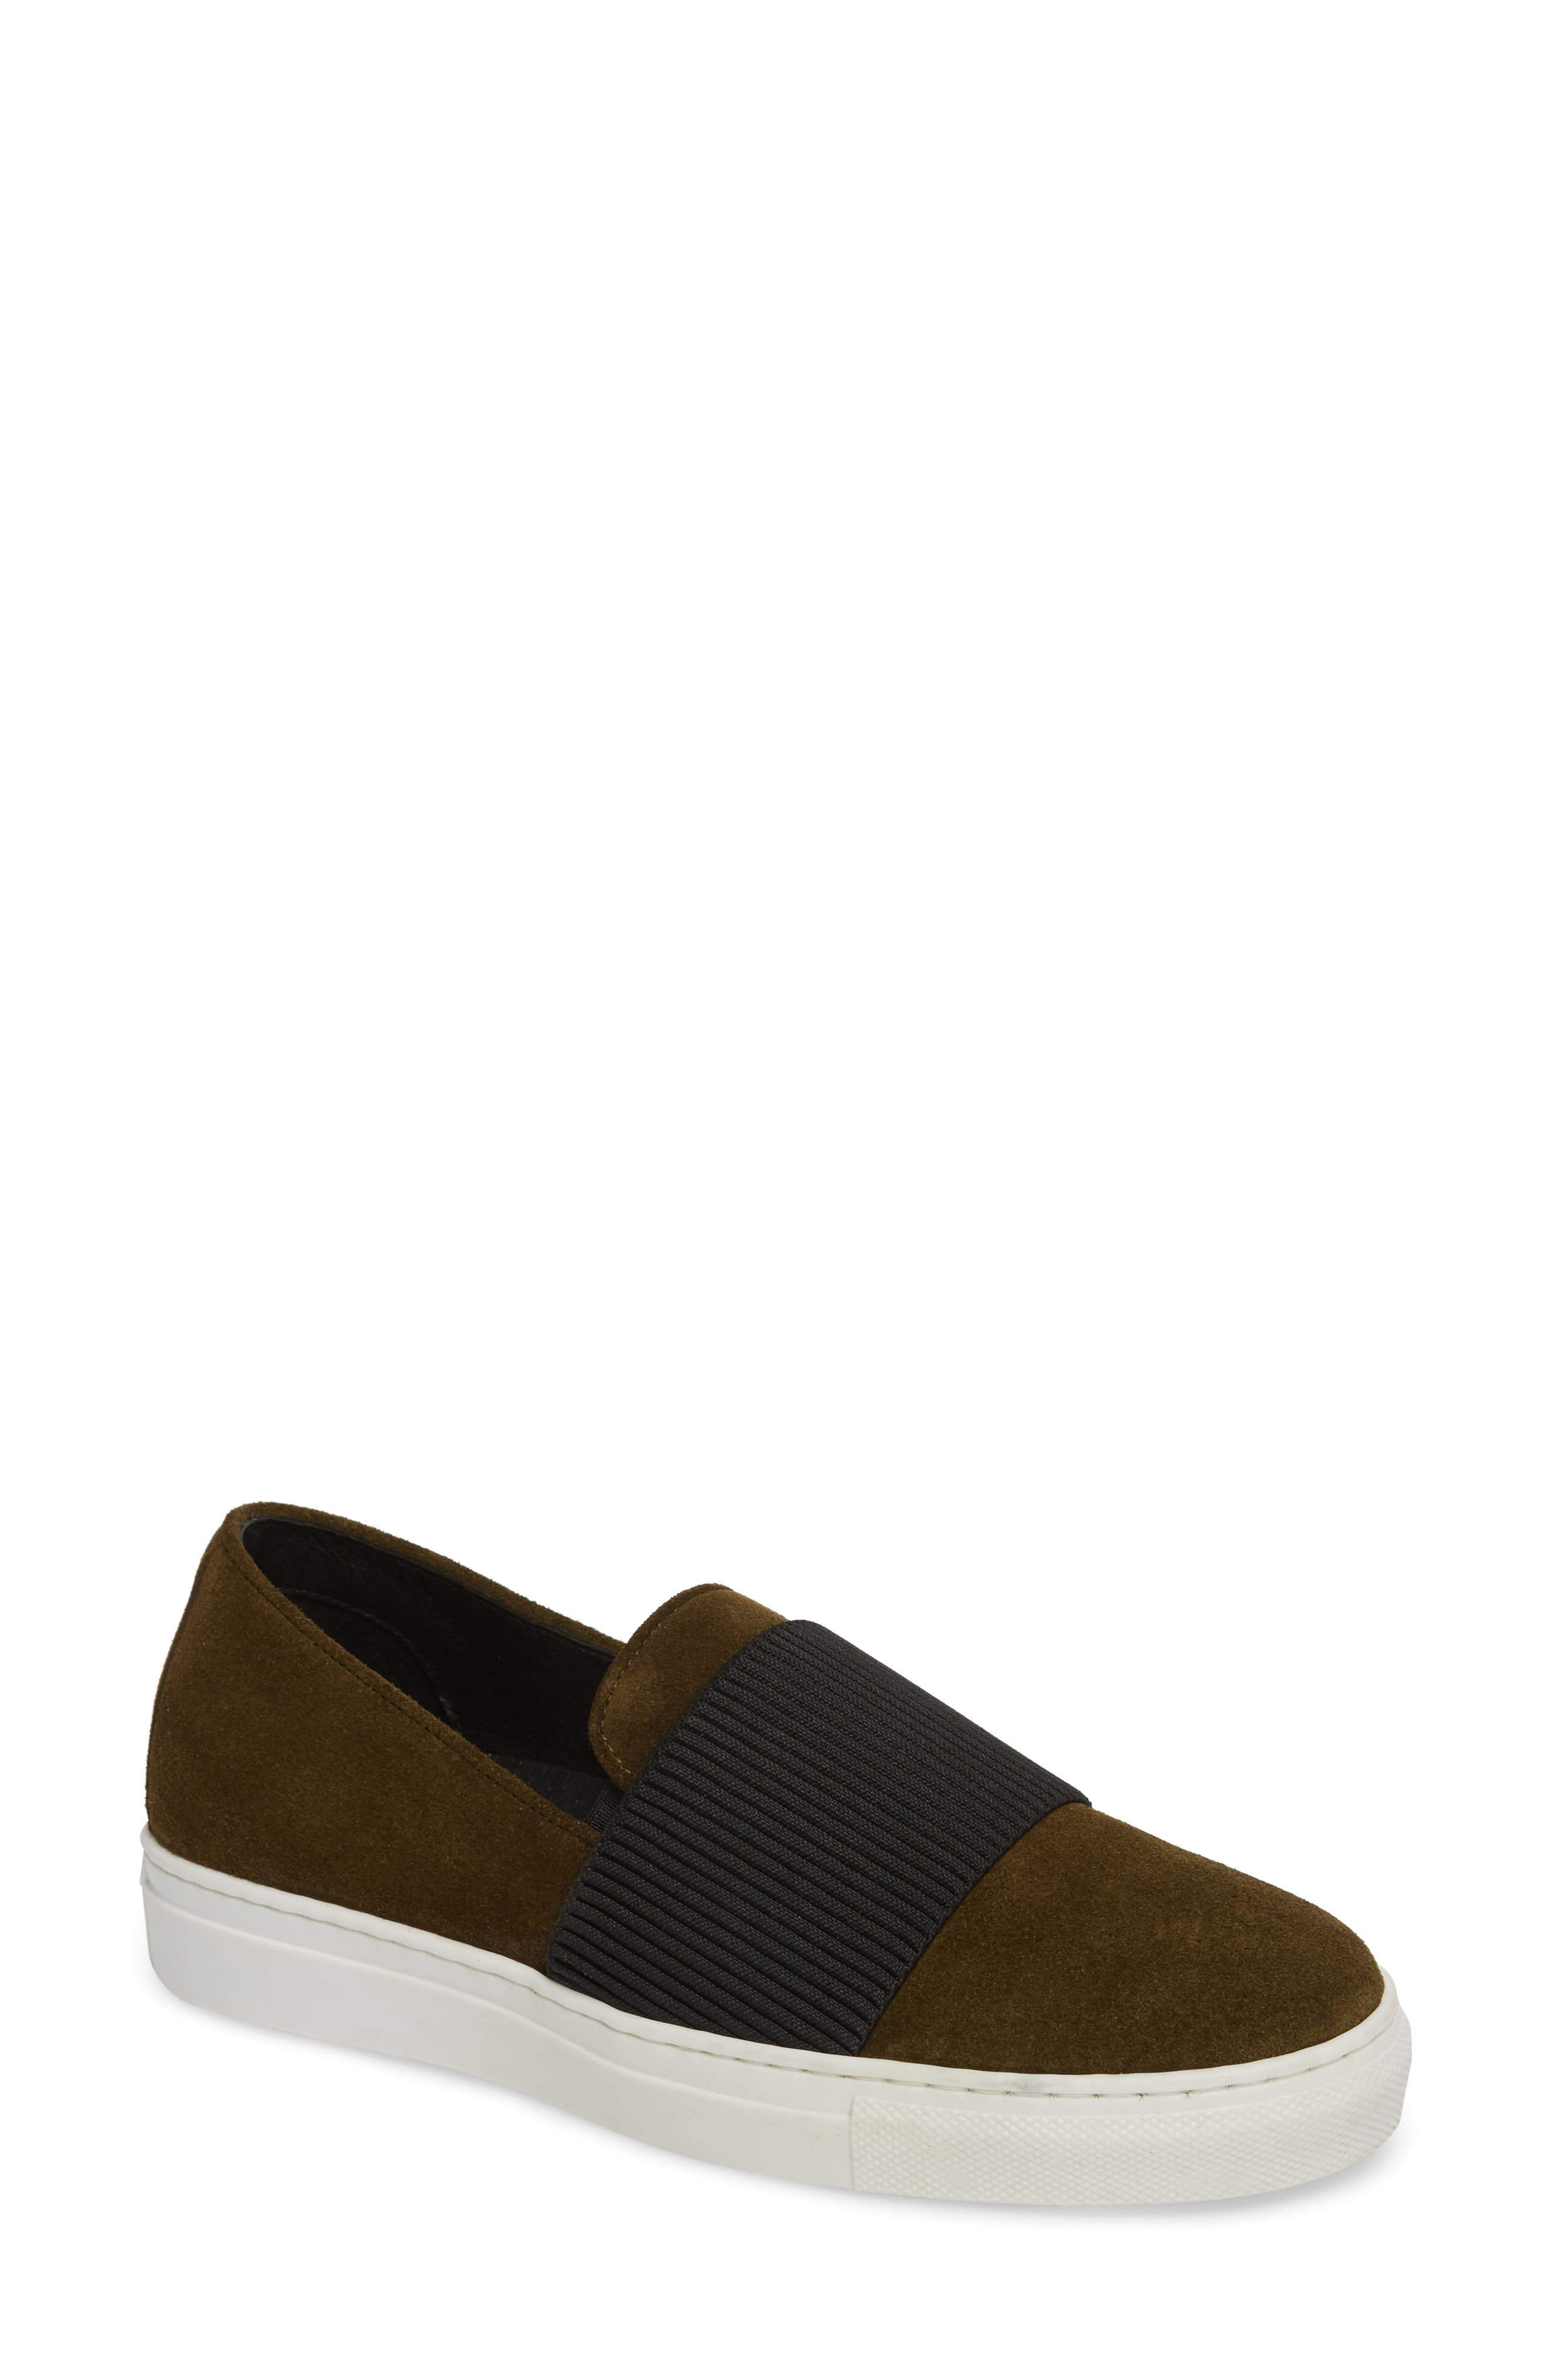 Otto Slip-On Sneaker,                         Main,                         color, MILITARY PRINT SUEDE